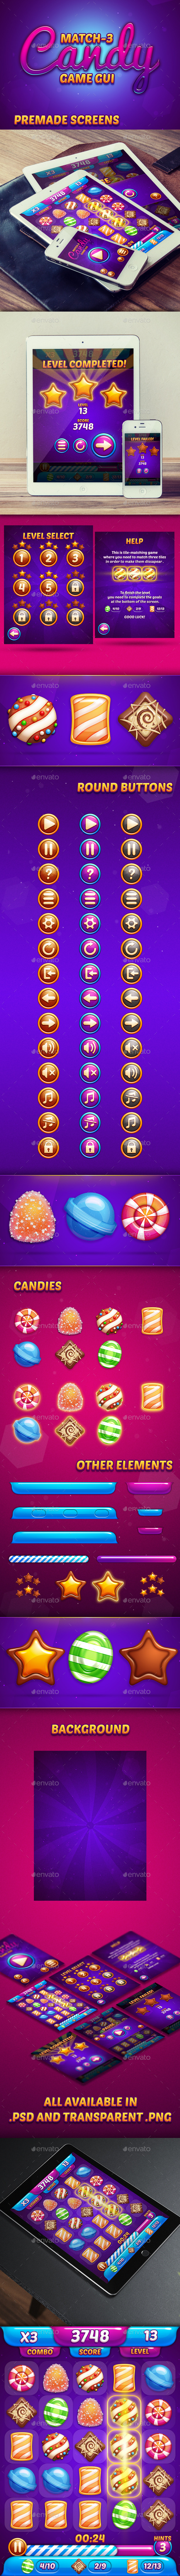 GraphicRiver Match-3 Candy Game GUI 11787993